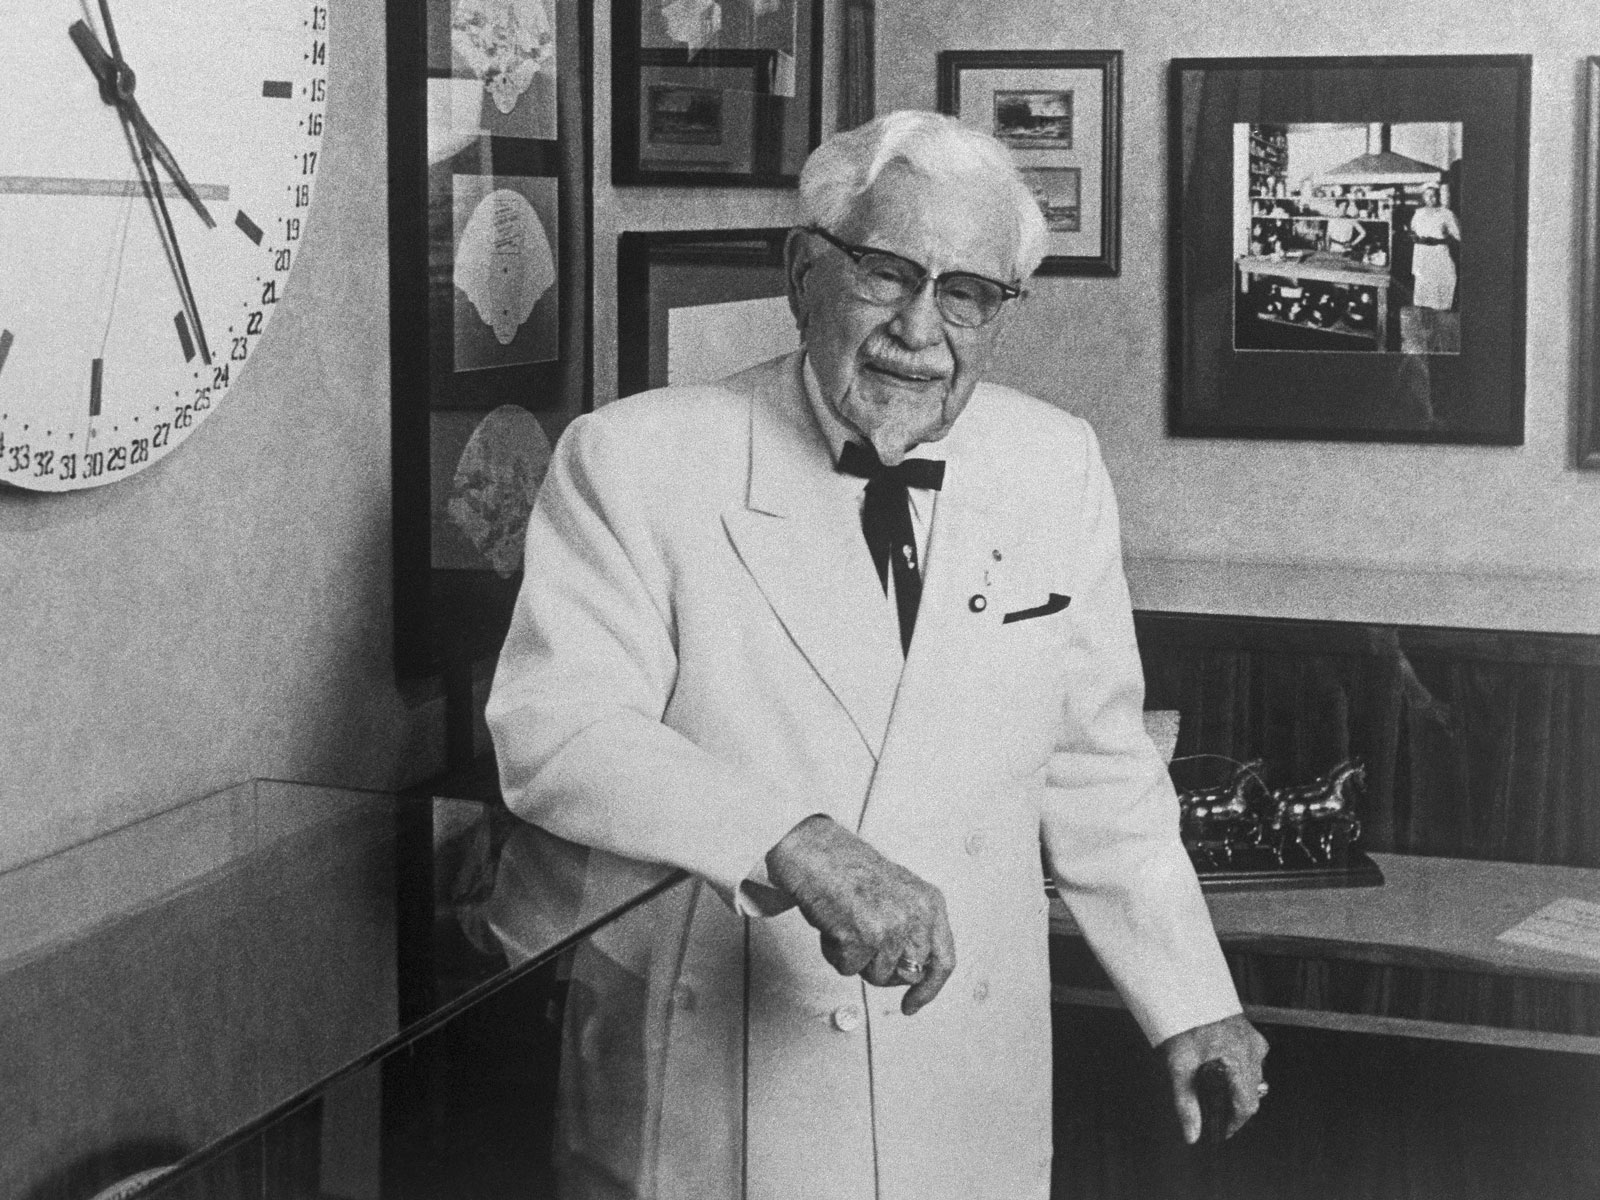 Colonel Sanders Funded a Children's Mandolin Band Album in the 1960s